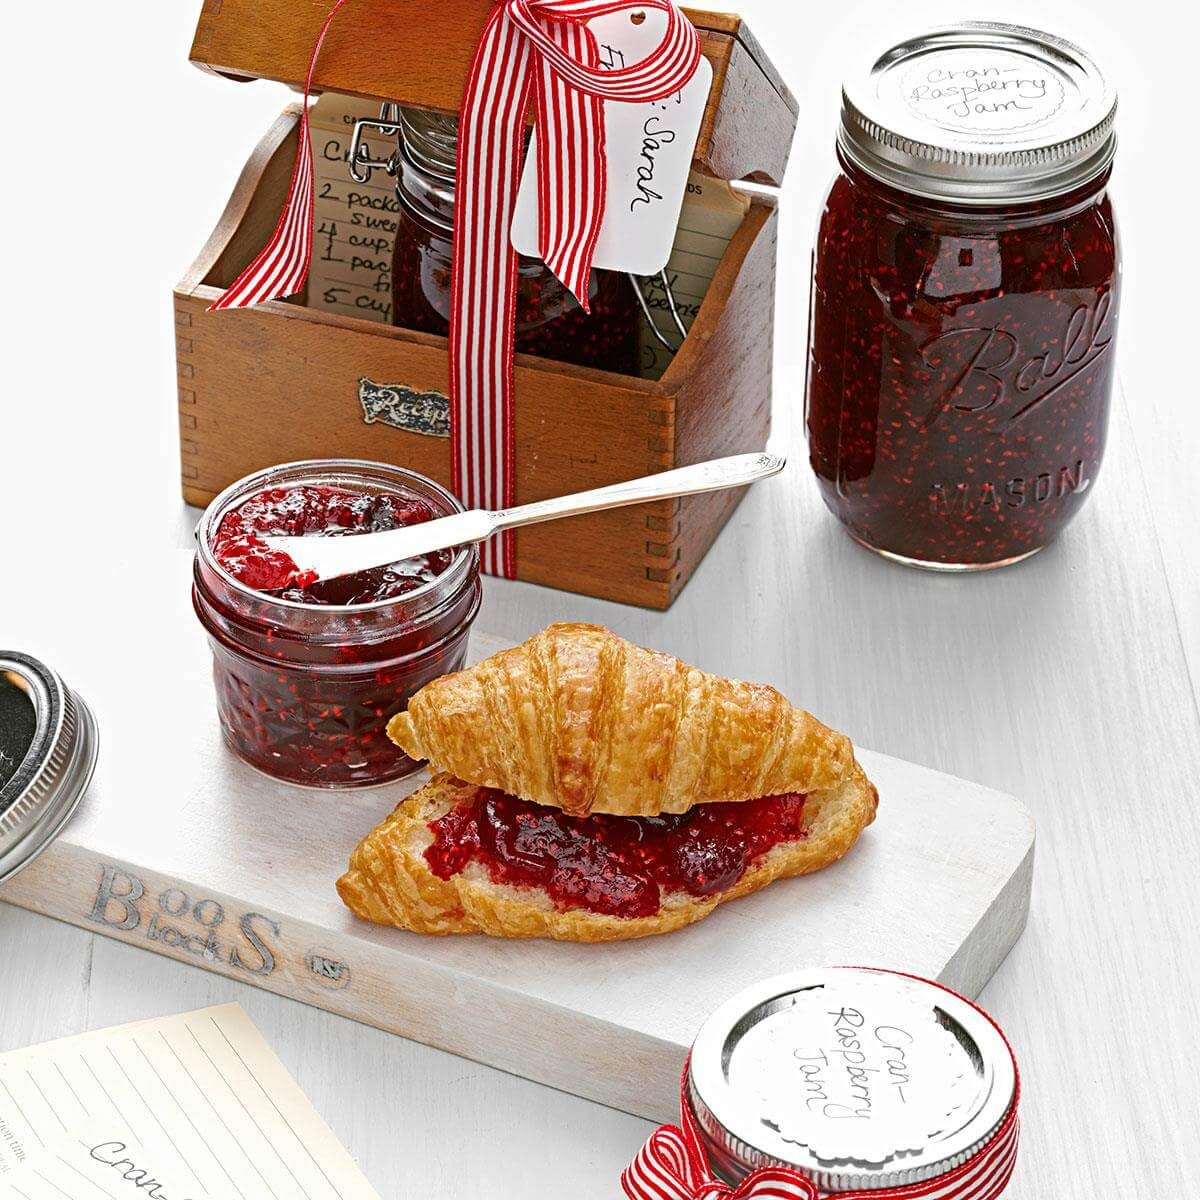 What you can make an unusual jam what fruits and berries 65